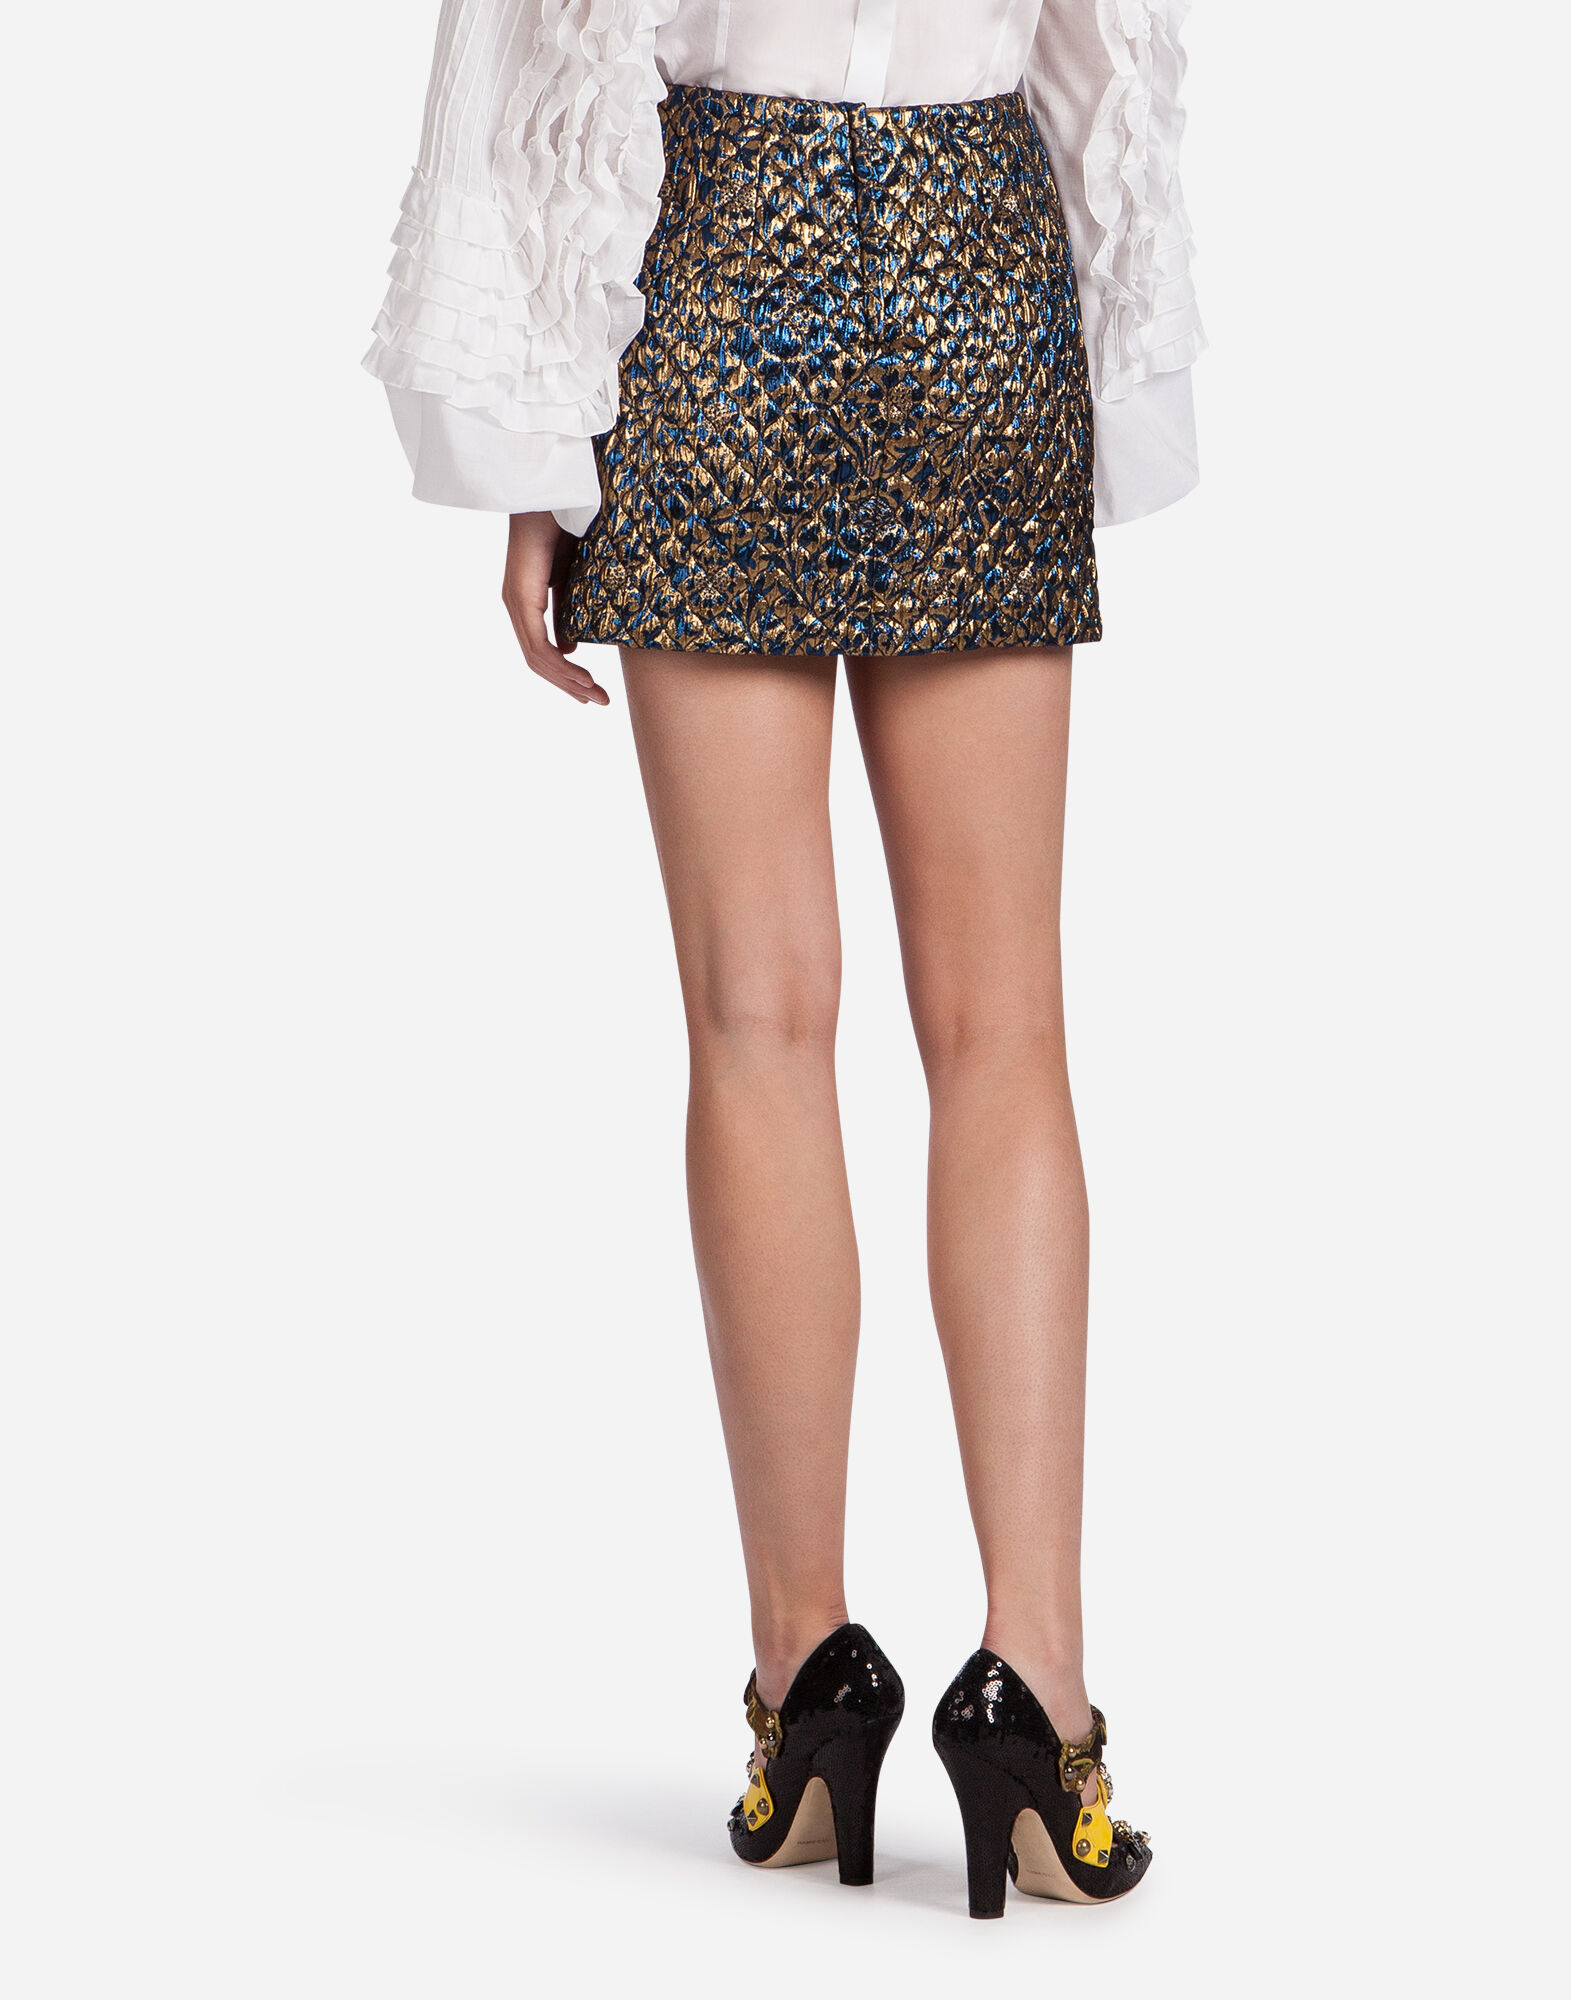 LUREX JACQUARD SKIRT WITH JEWEL BUCKLES